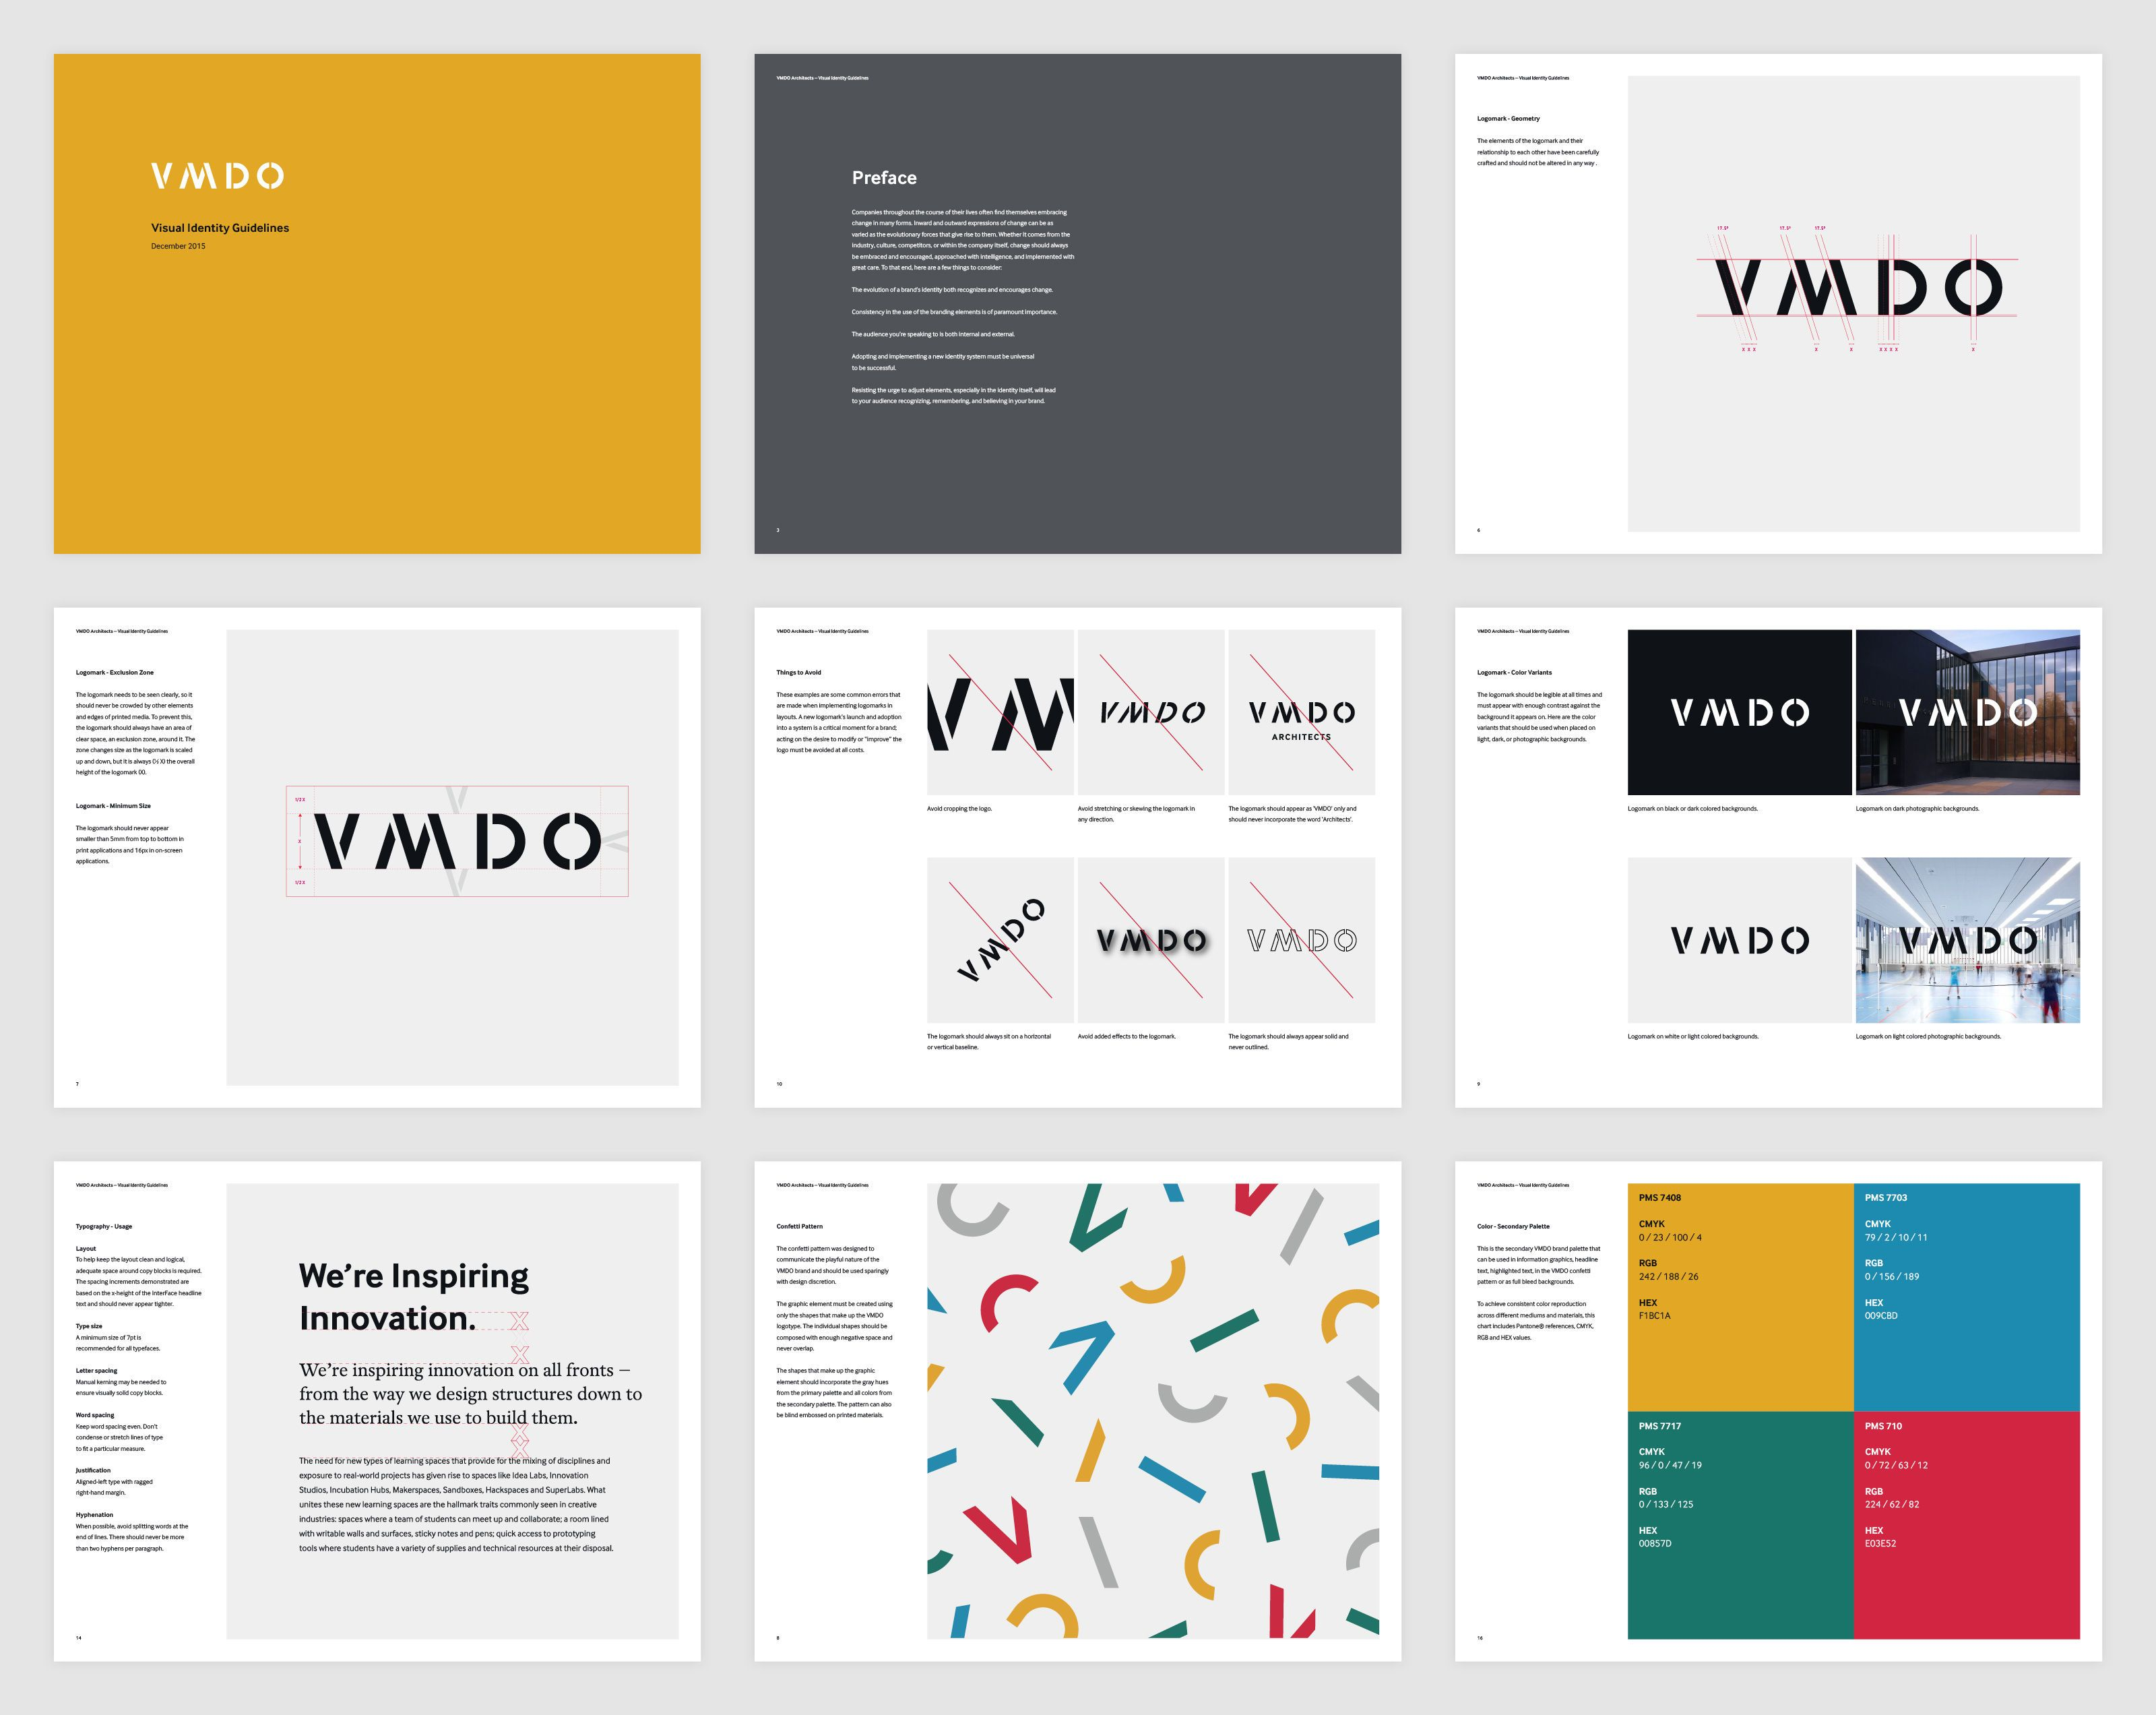 brand style guide for page layouts